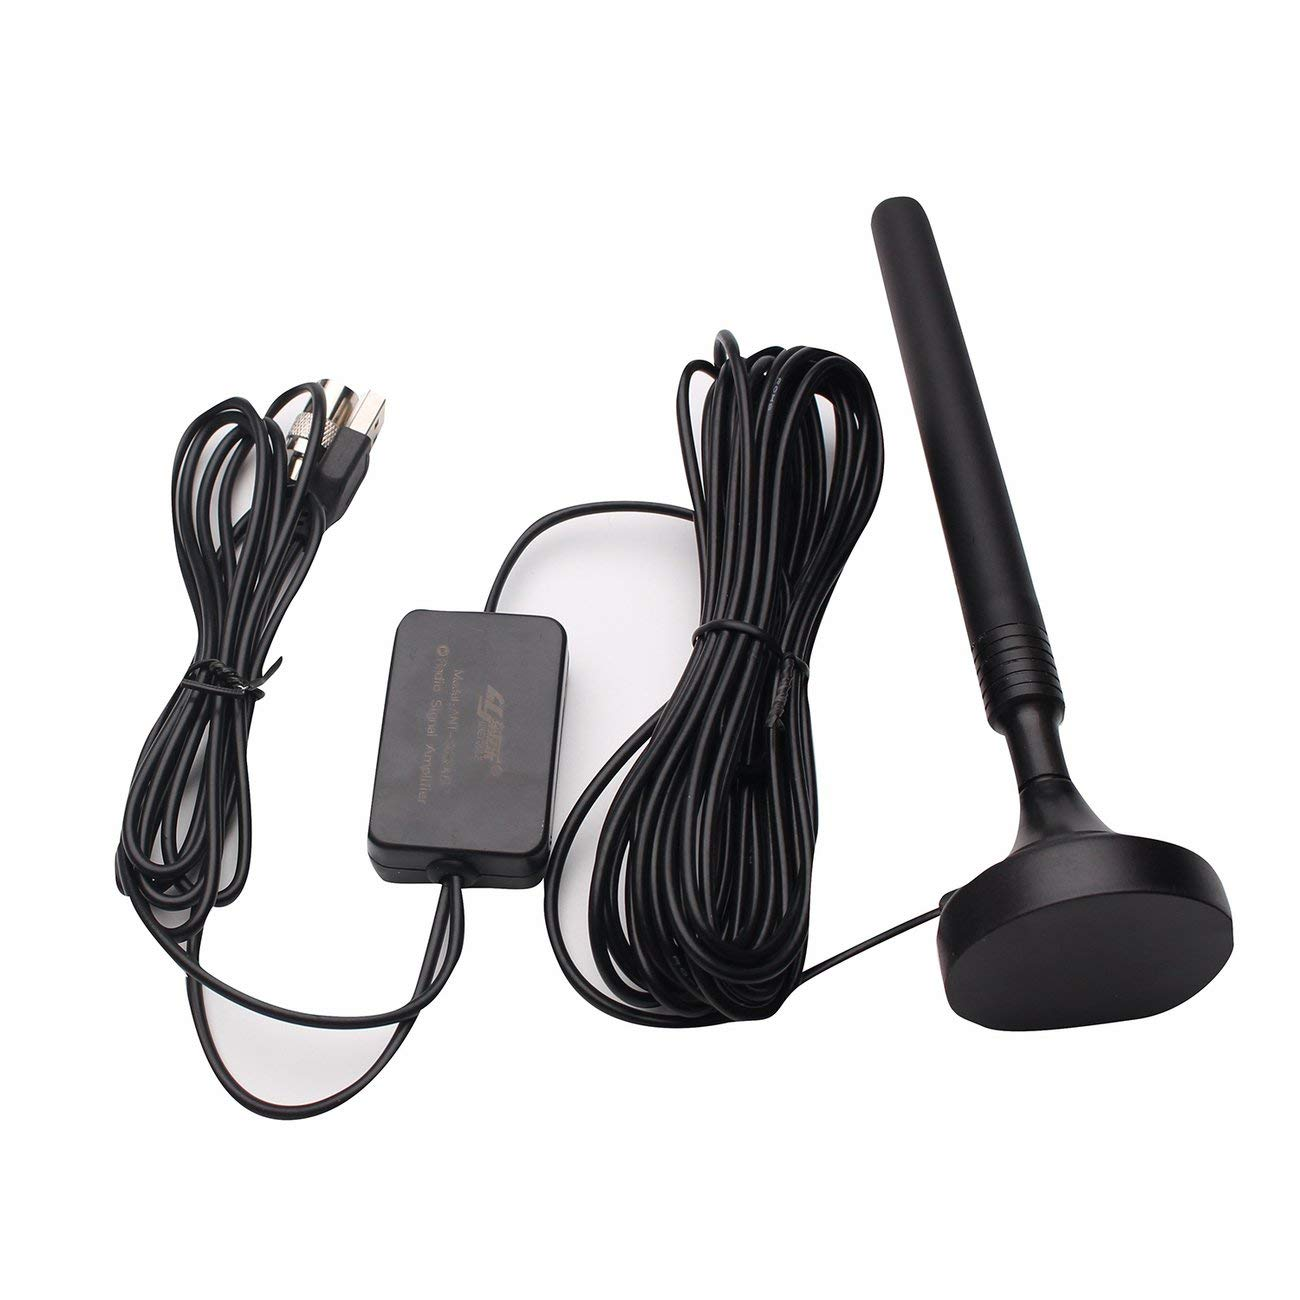 Easy to Use Plug and Play ANT-308PLUS Household USB FM Antenna,25dB High Gain FM Radio Antenna Amplified FM Signal for Low Floor